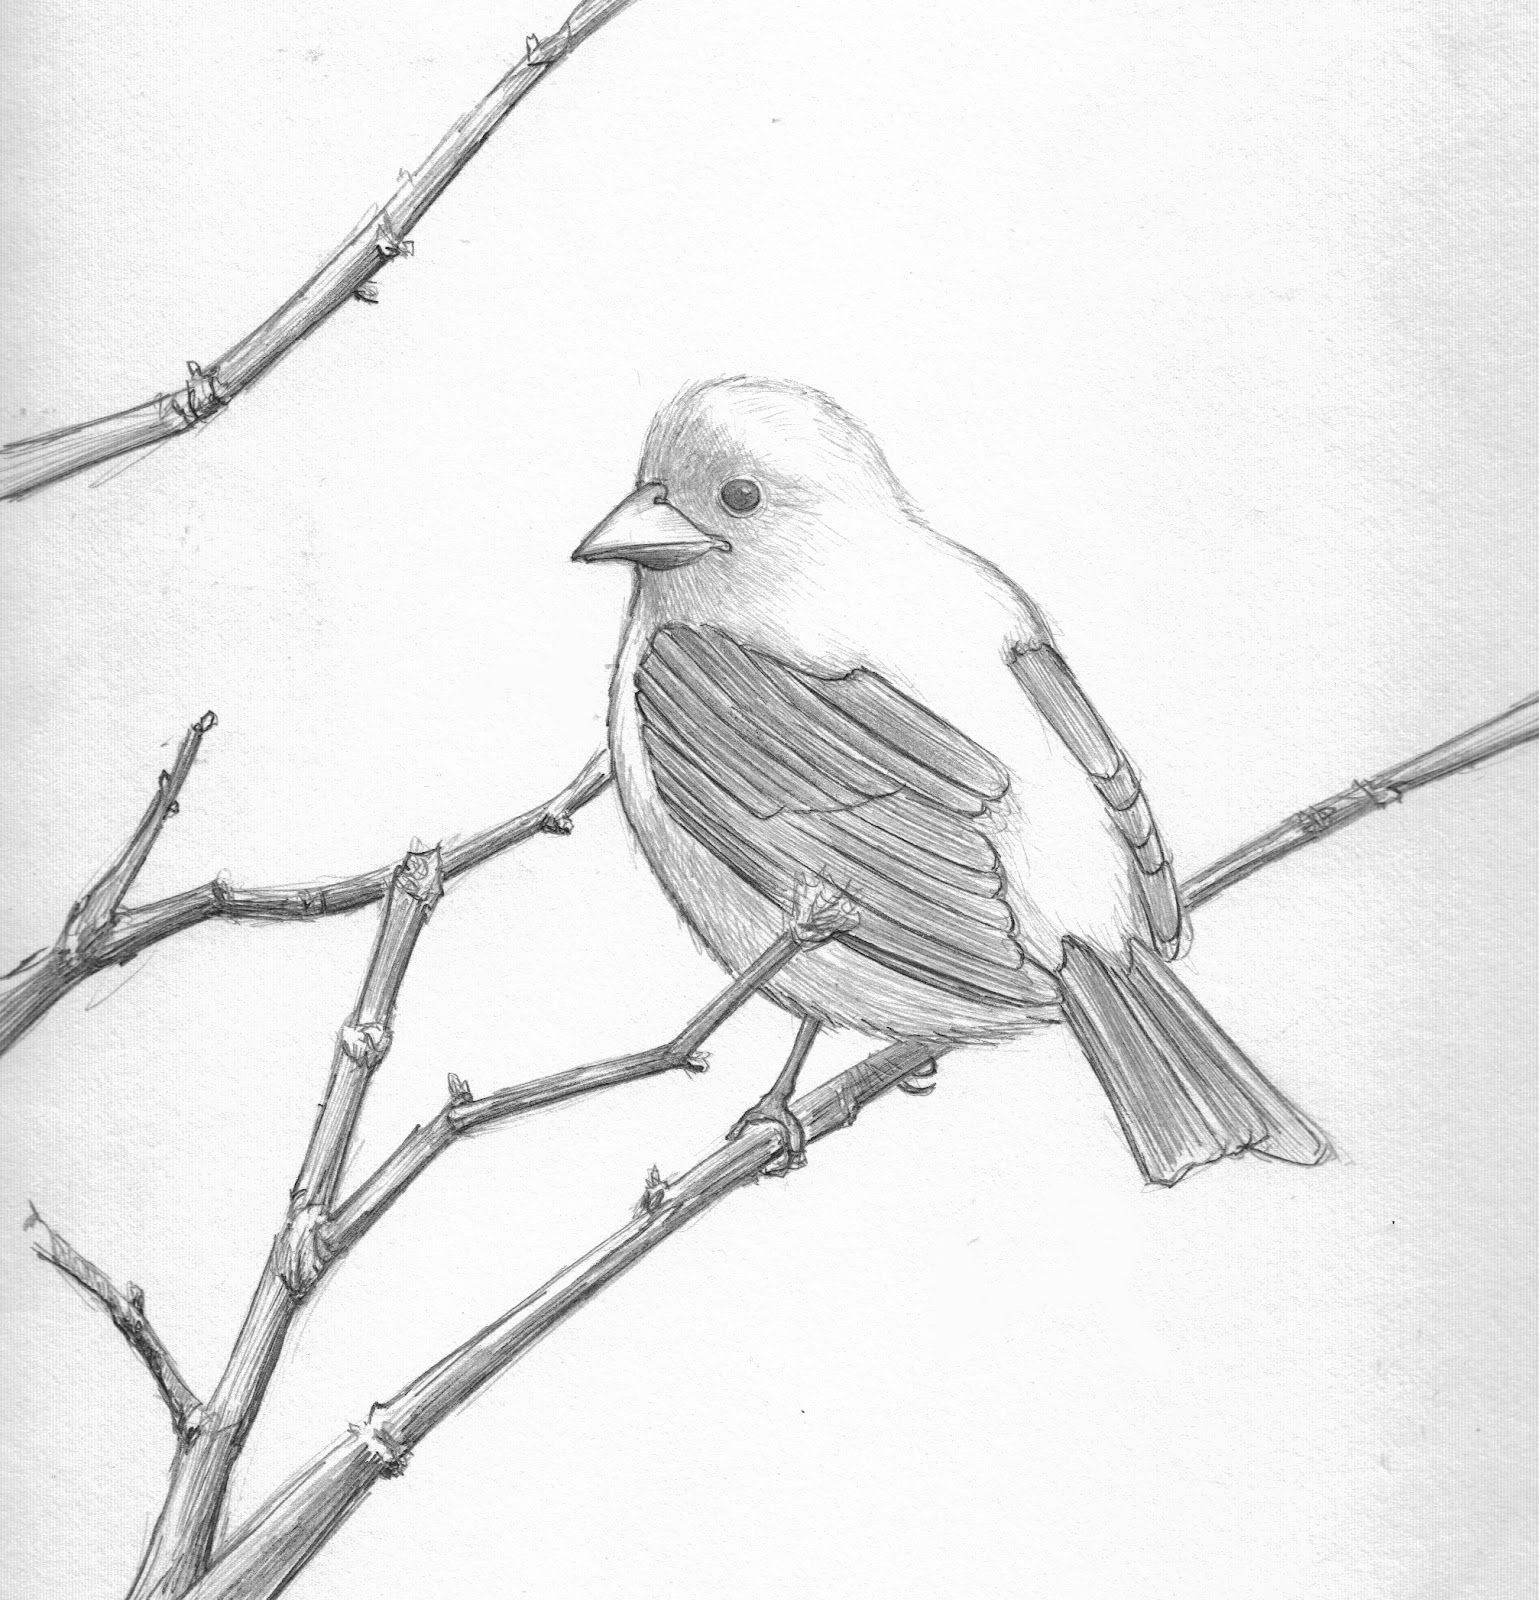 Uncategorized Drawings Of Lovebirds drawings of love birds bird pencil drawing scarlett tanager tanager